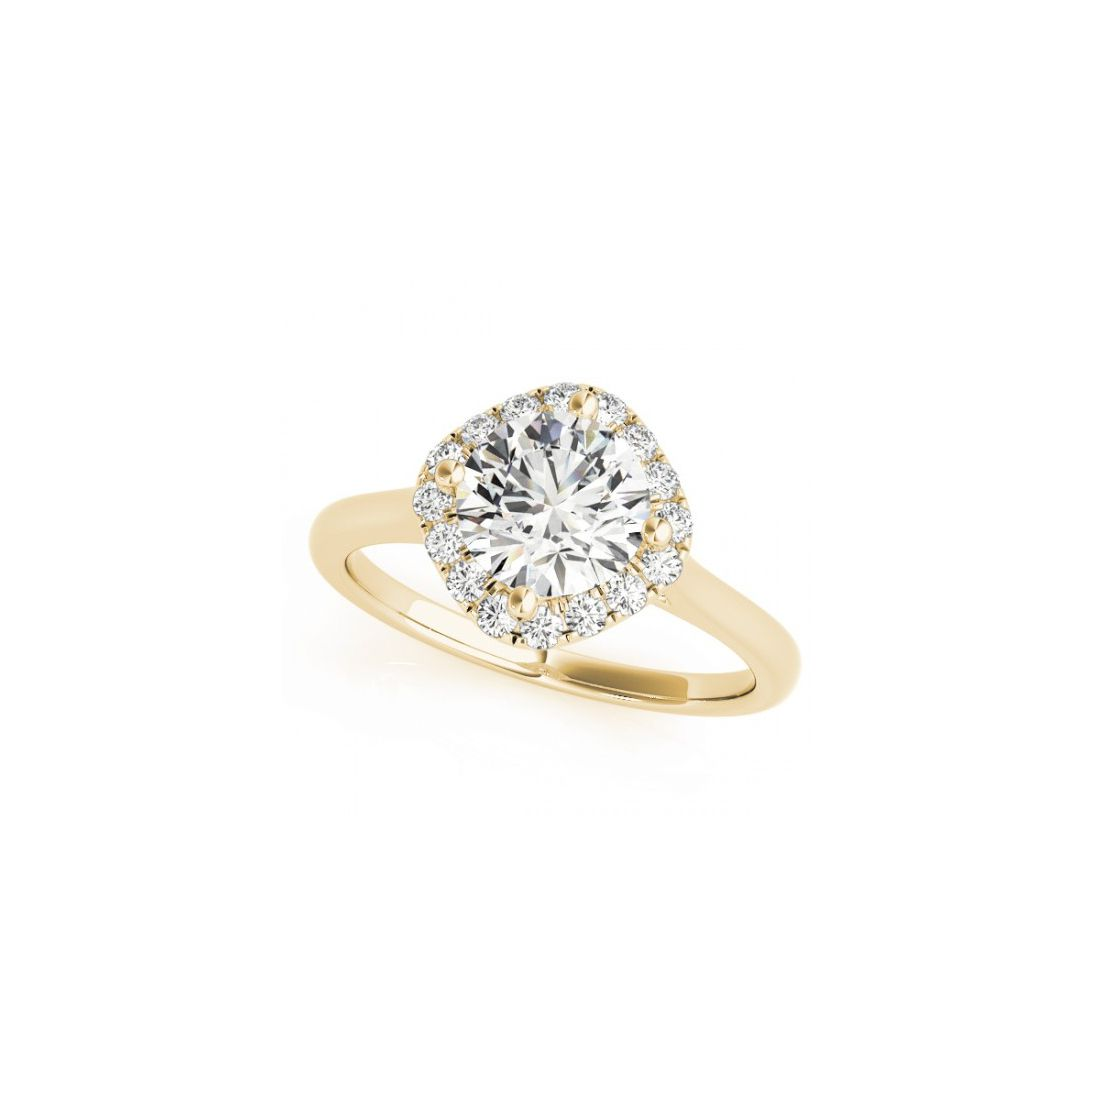 Diamond halo engagement ring with yellow gold band on a white background